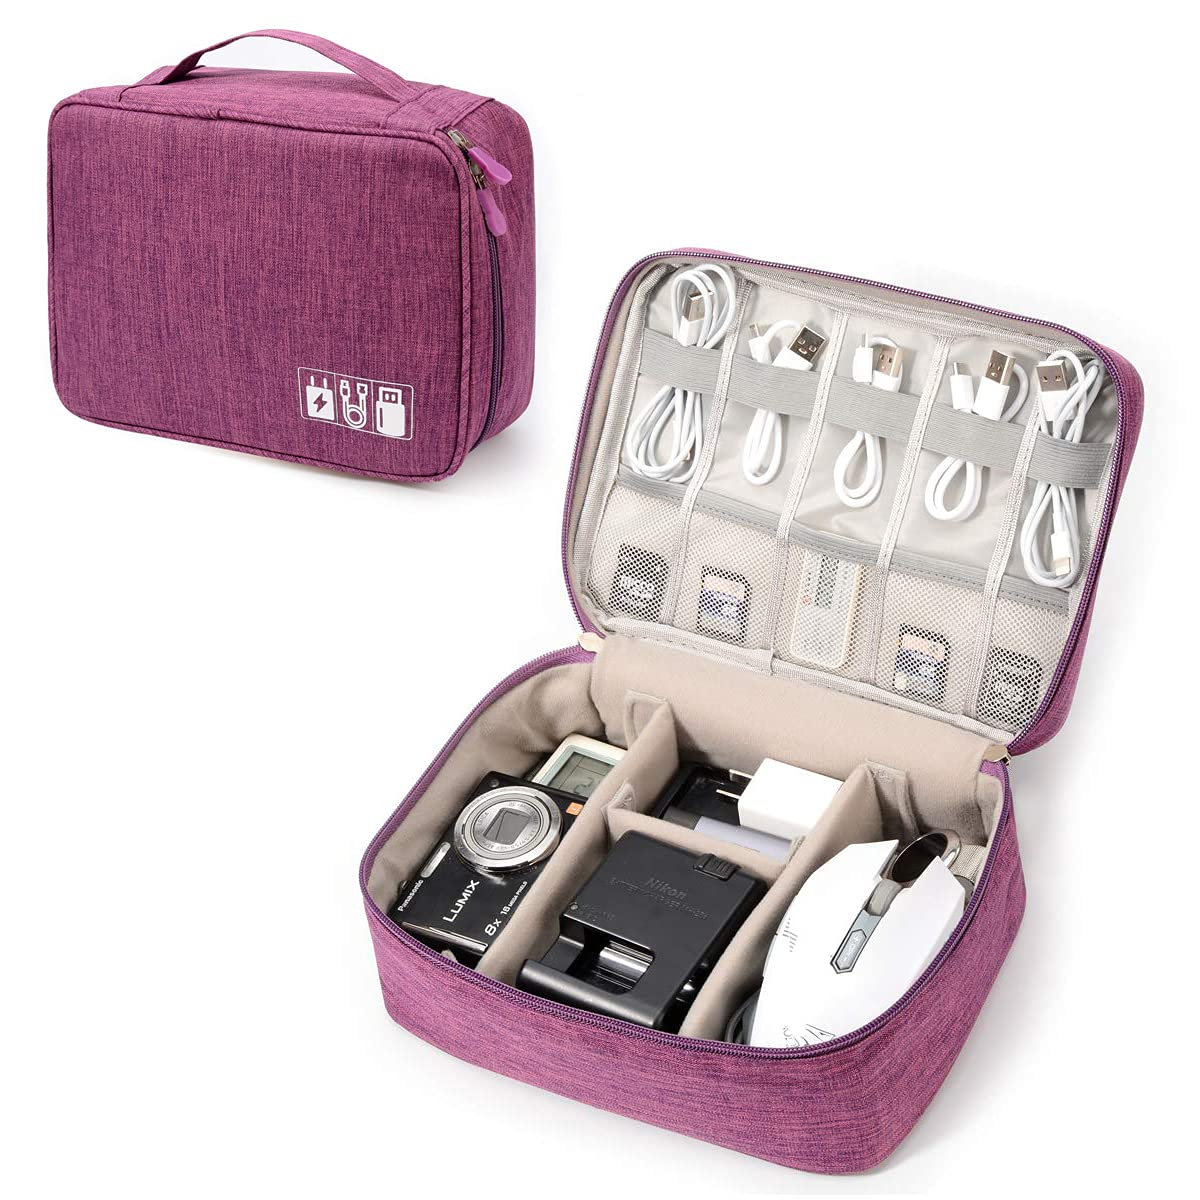 Electronic Organizer Travel Universal Cable Organizer Electronics Accessories Storage Bag Gadget Gear Cases for iPad Mini, Kindle, Smartphone, Cable, Charger, Power Bank, USB, SD Card (Purple)